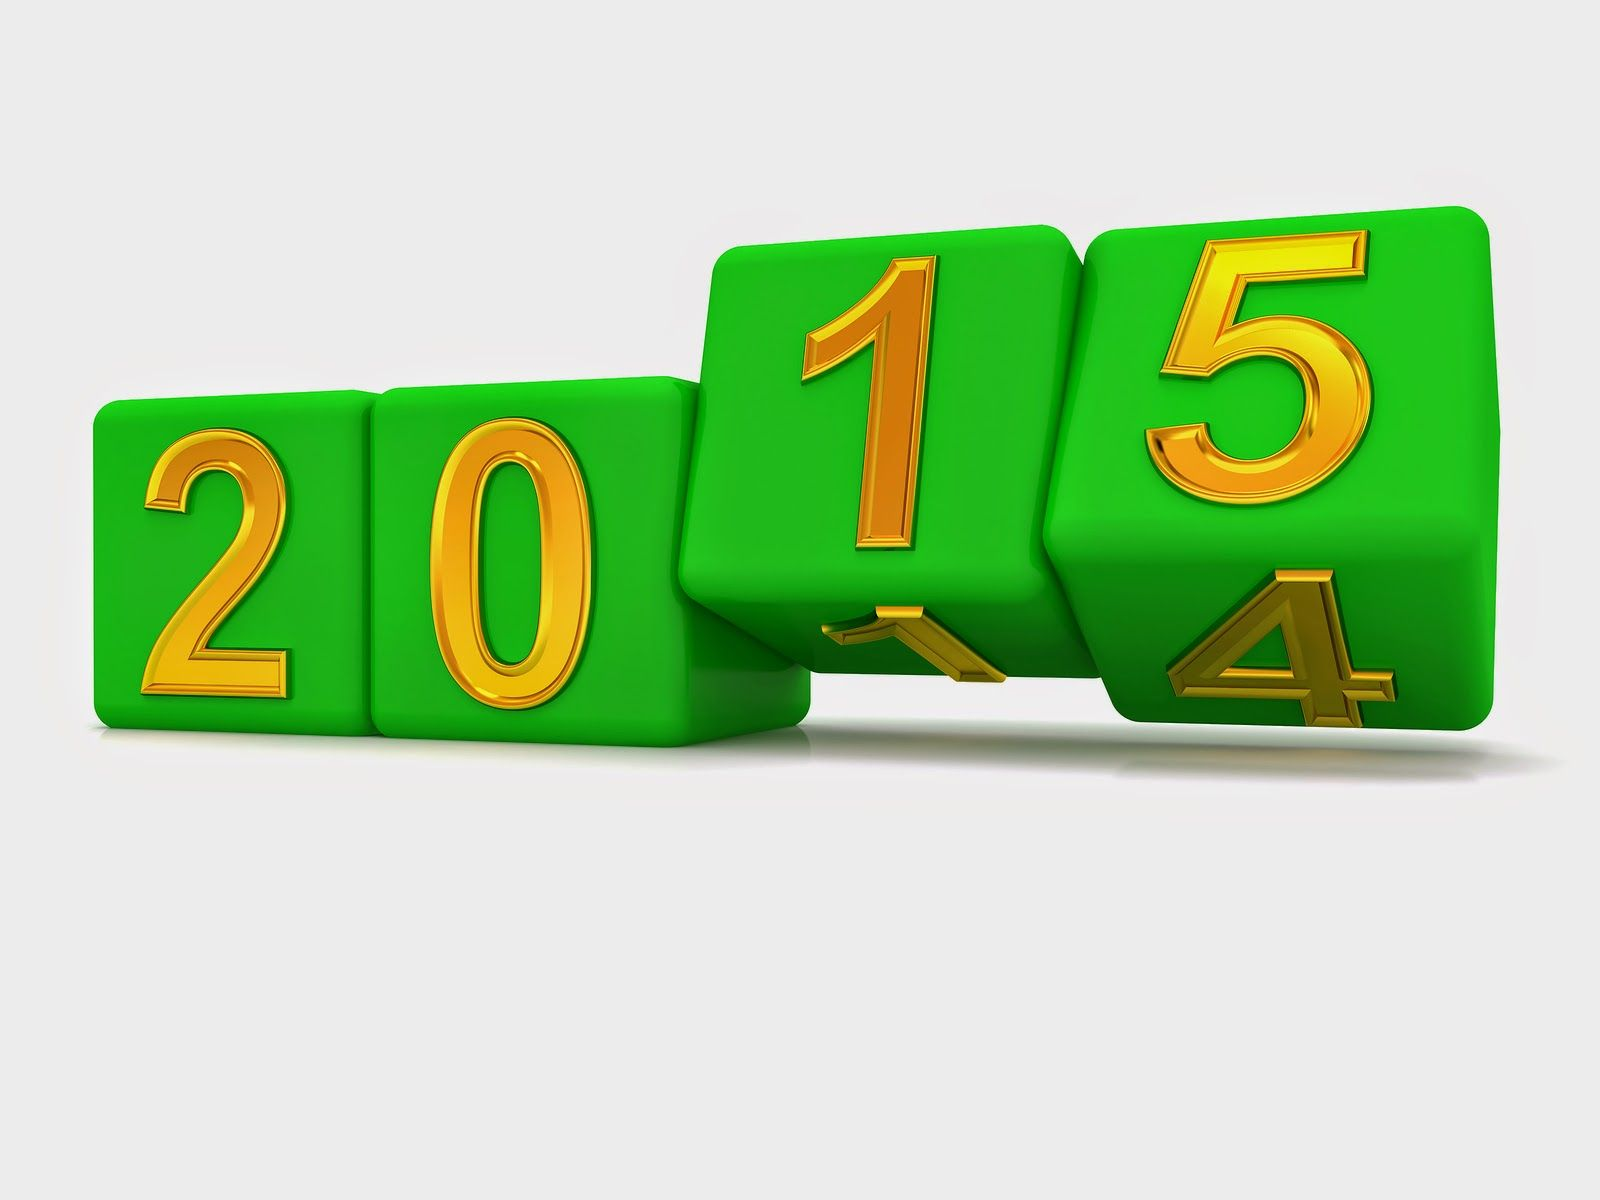 Happy new year 2015 hd wallpaper free download happy new year 2014 happy new year 2015 hd wallpaper free download happy new year 2014 wishes voltagebd Images